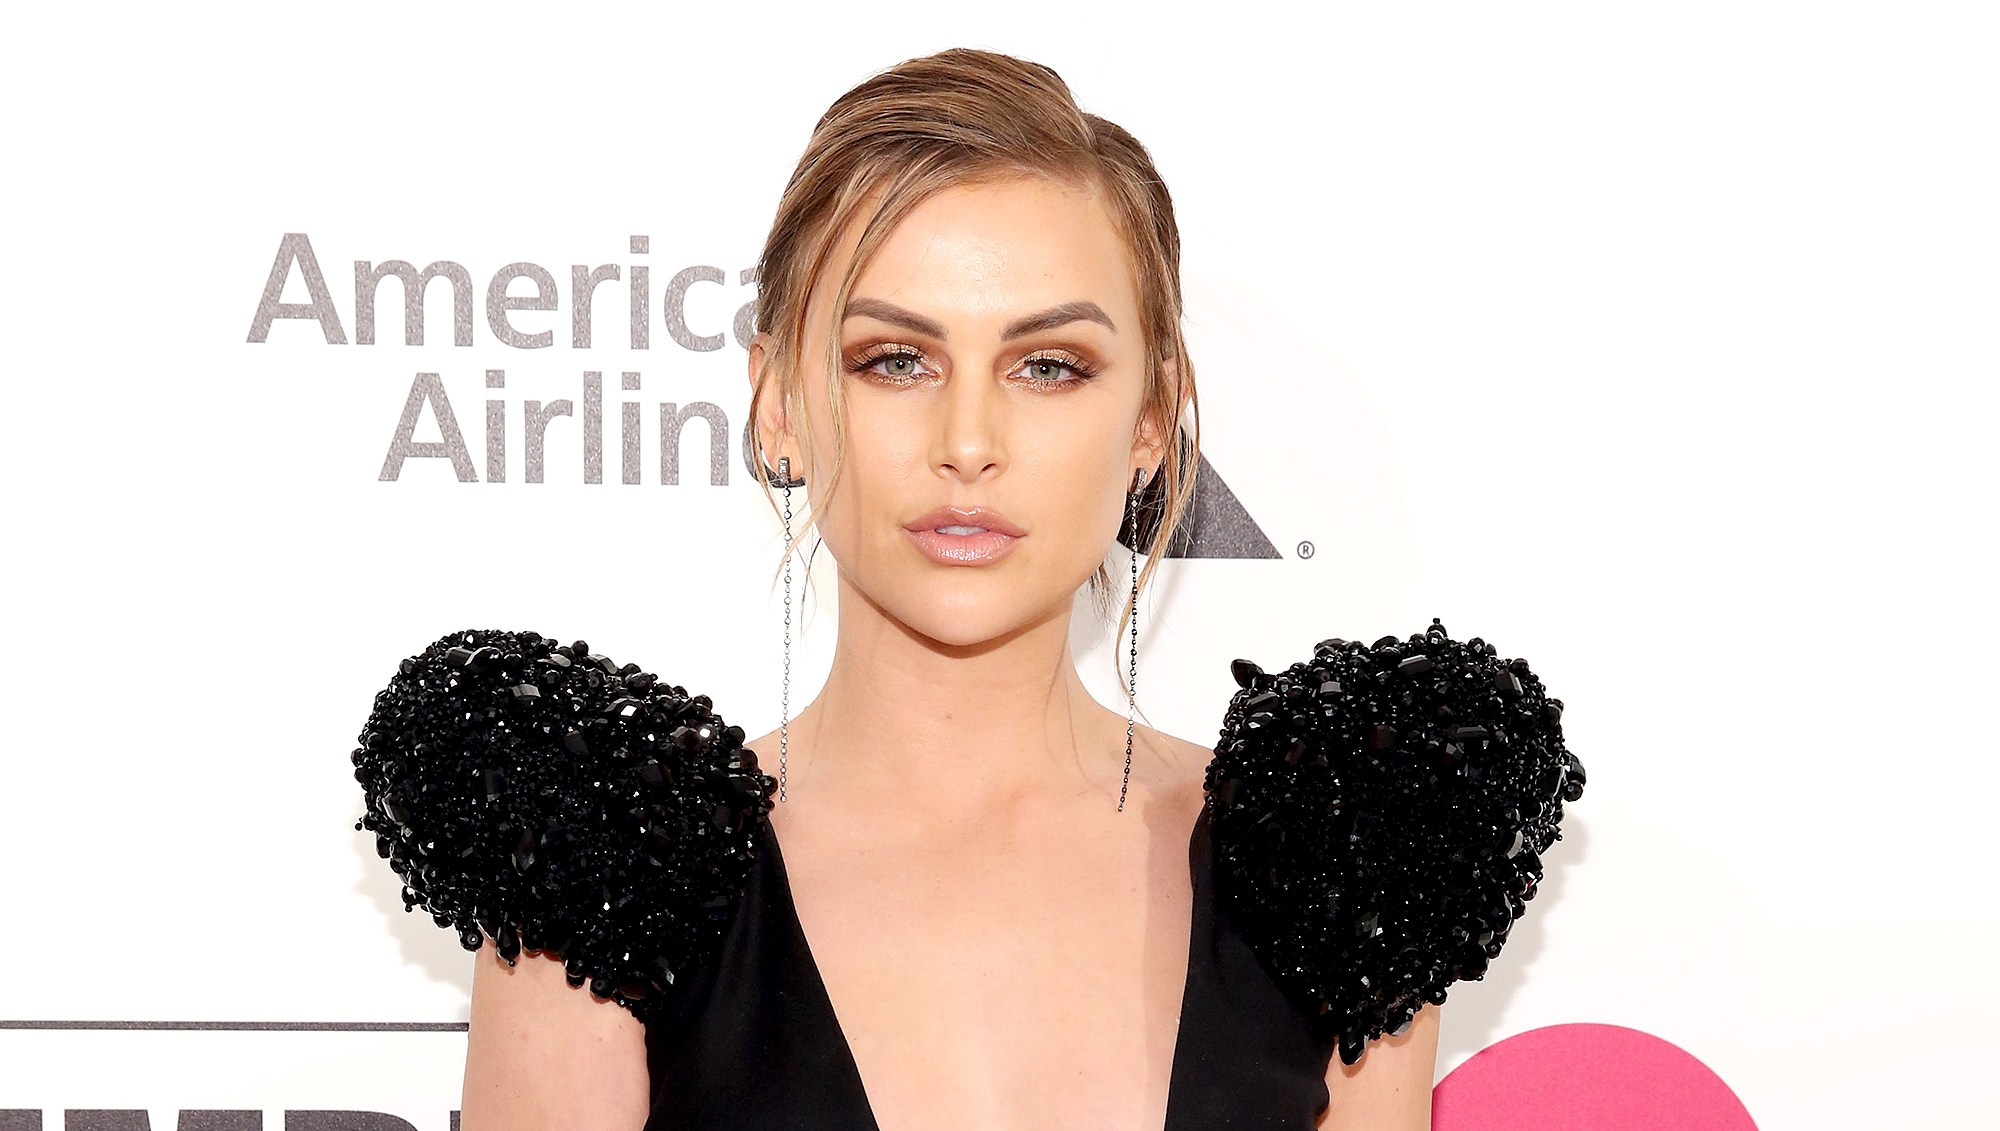 Vanderpump Rules' Lala Kent Claps Back at Trolls Who Tell Her She 'Used to Be Pretty'